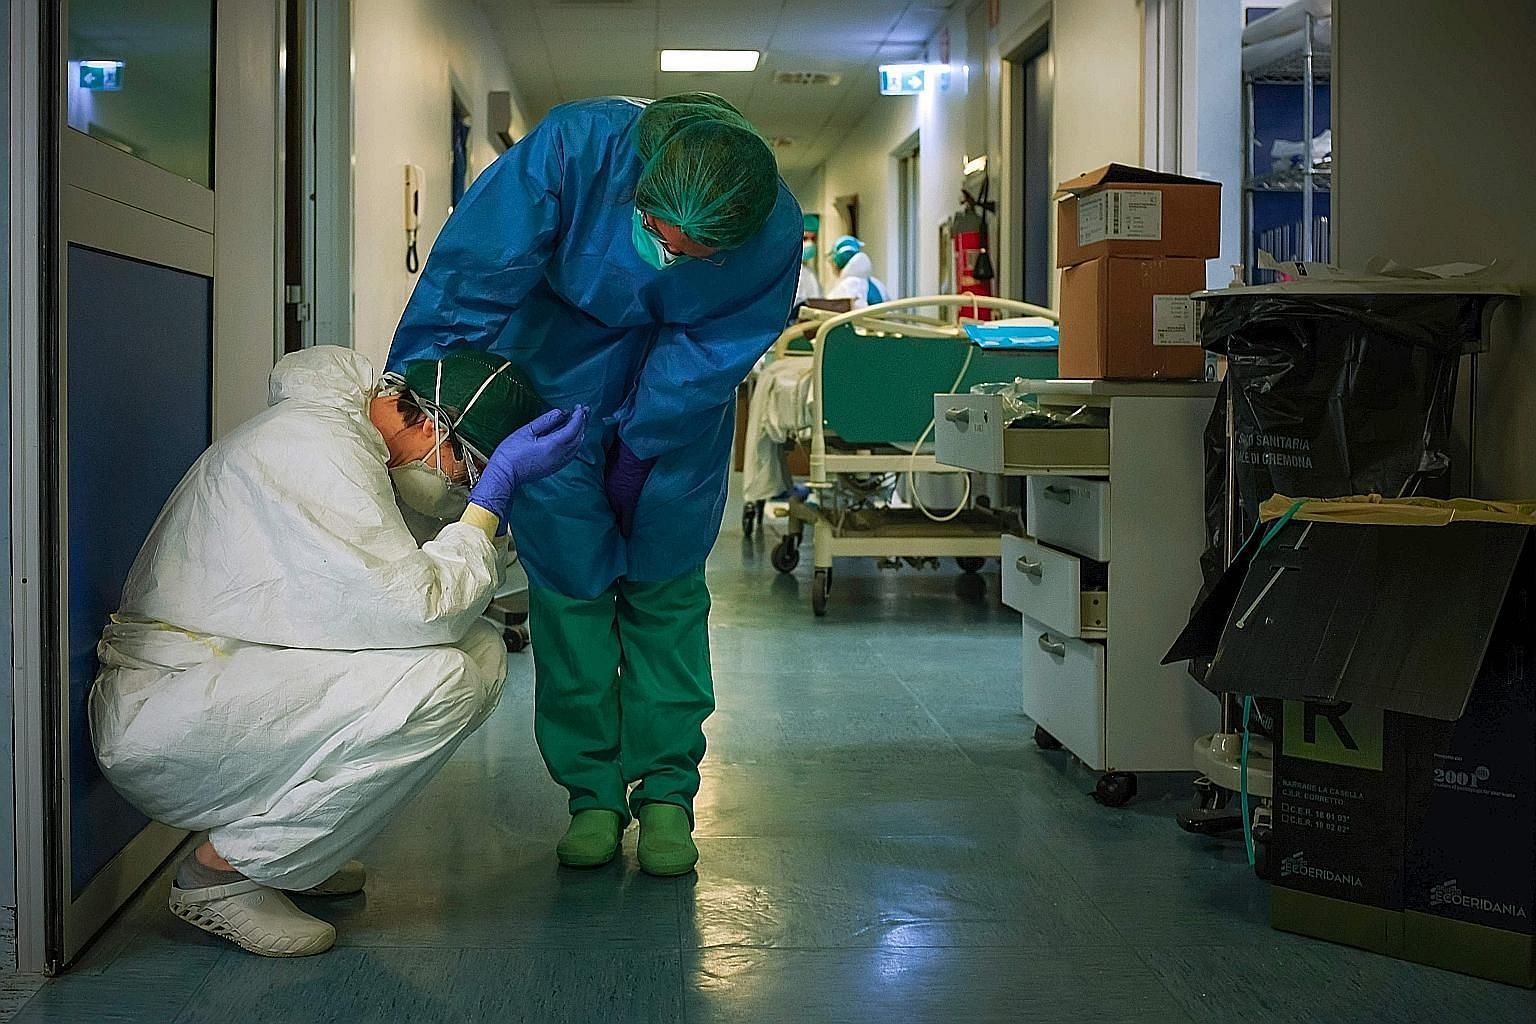 An emergency contingent of Cuban doctors and nurses arriving at the Malpensa airport in Milan, within the Lombardy region, on Sunday to help Italy in its long battle against the coronavirus pandemic. At Palazzo Marino in Milan, the headquarters of th